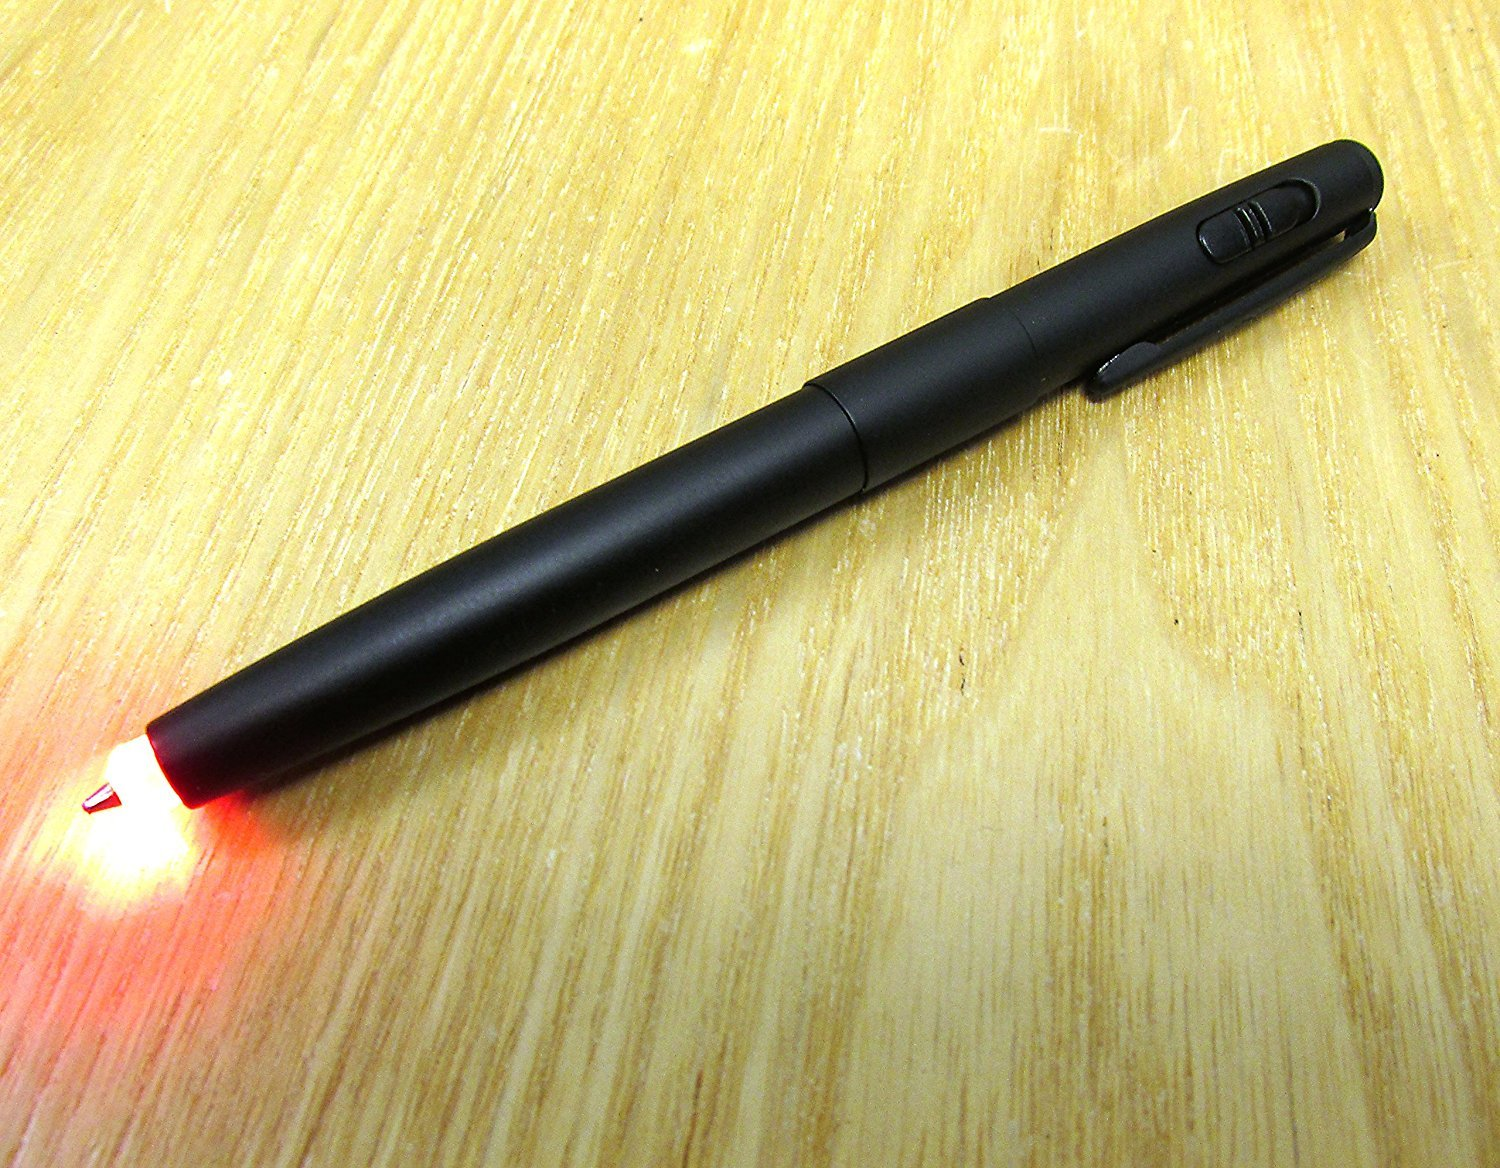 Skilcraft Luminator Tactical Pen